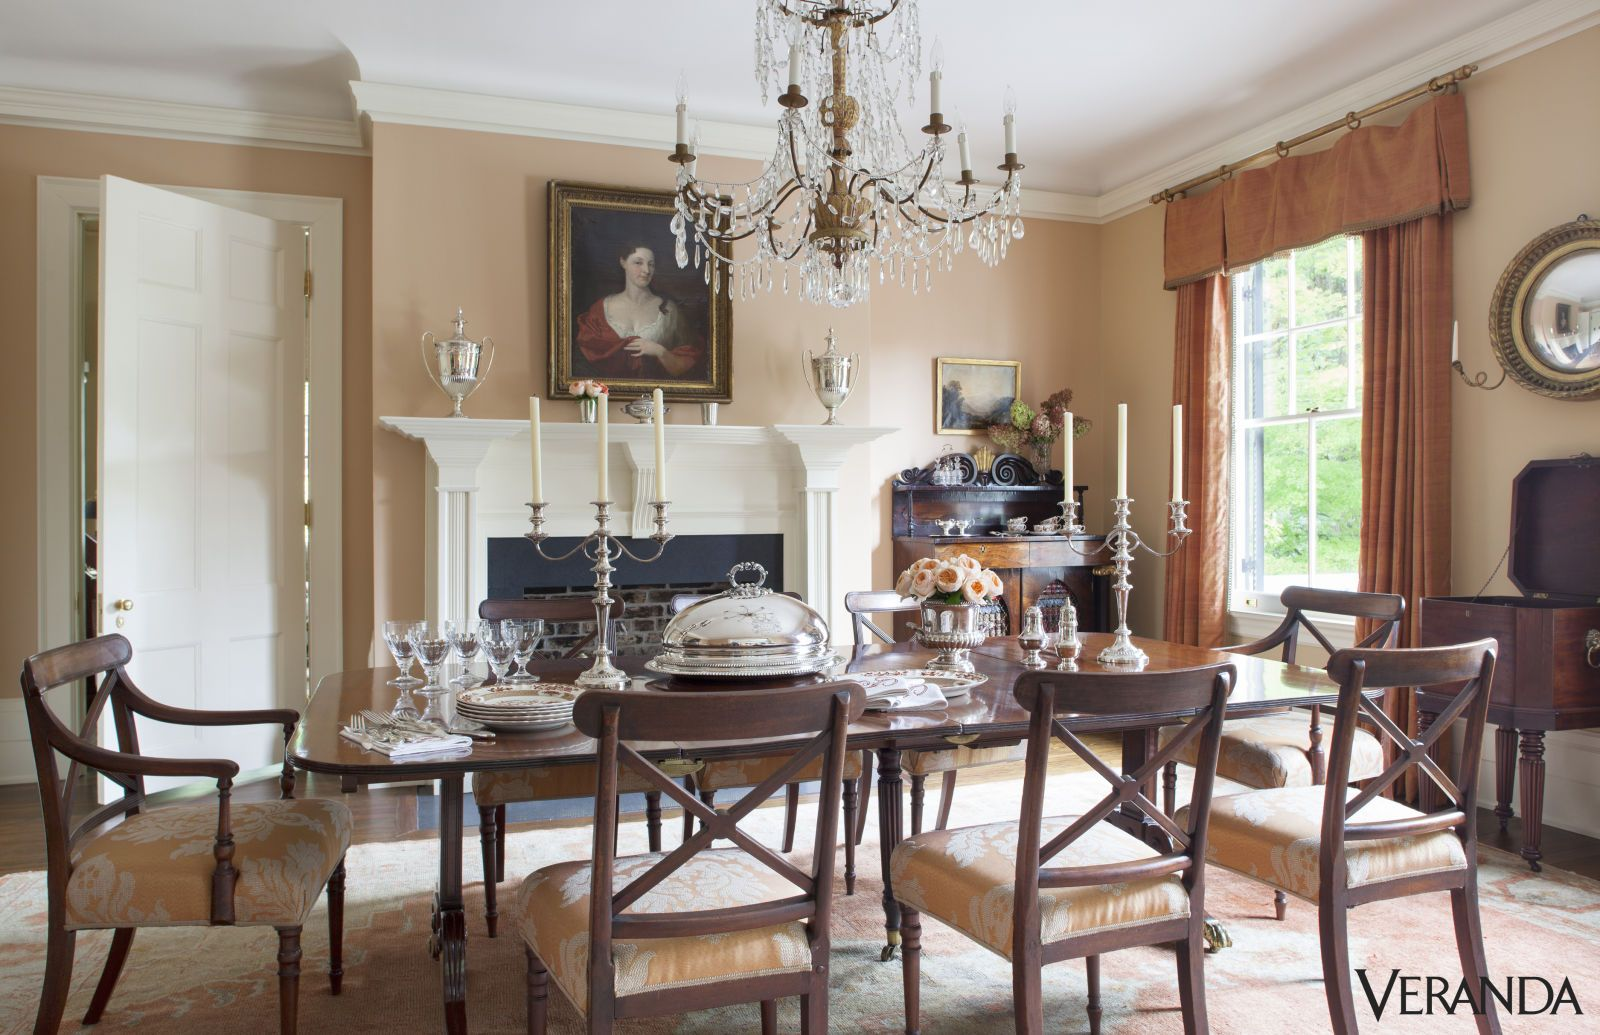 15 Antique Chandeliers That Will Make Every Day Feel Luxurious Greek Revival Homemahogany Dining Tabledining